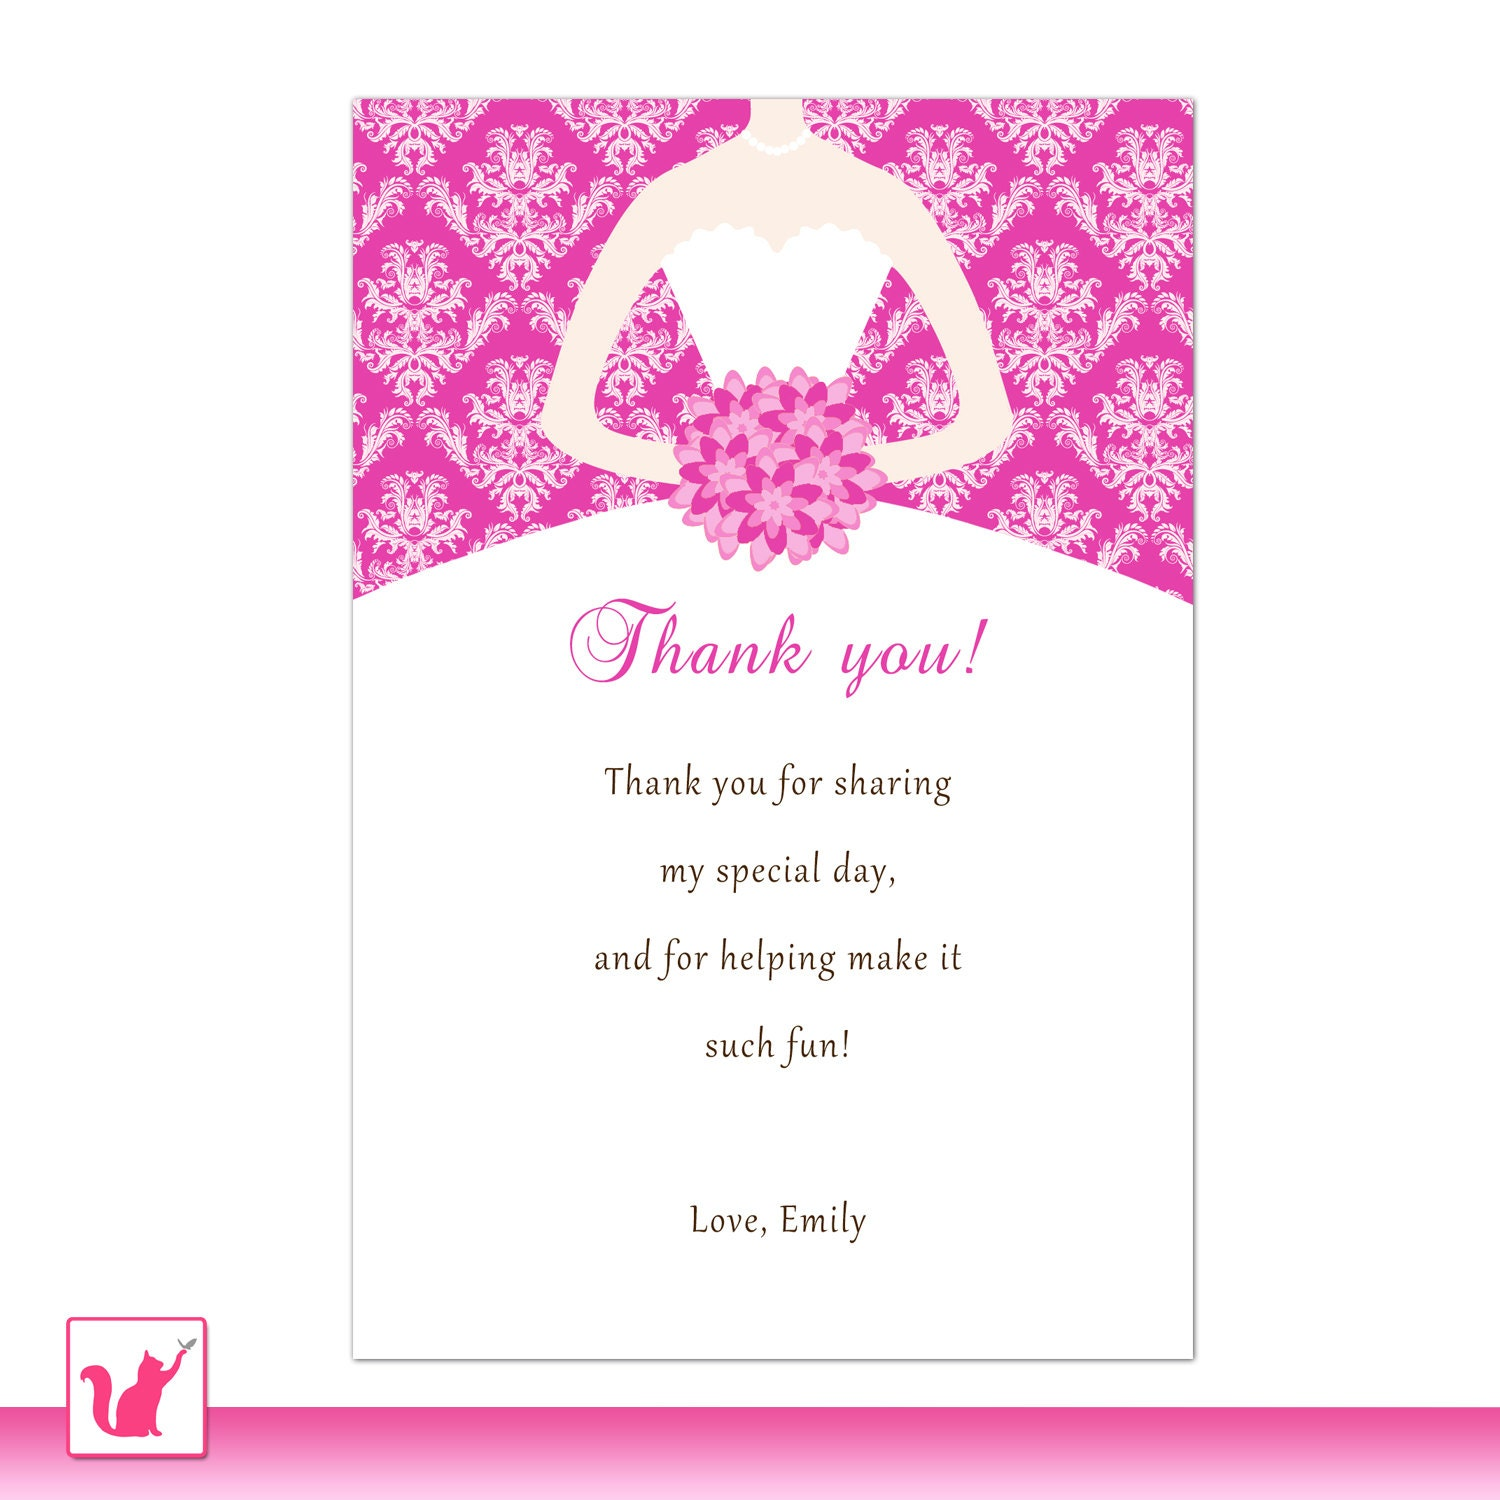 Wedding Thank You Note Wording: Printable Personalized Fuchsia Hot Pink Damask Thank By